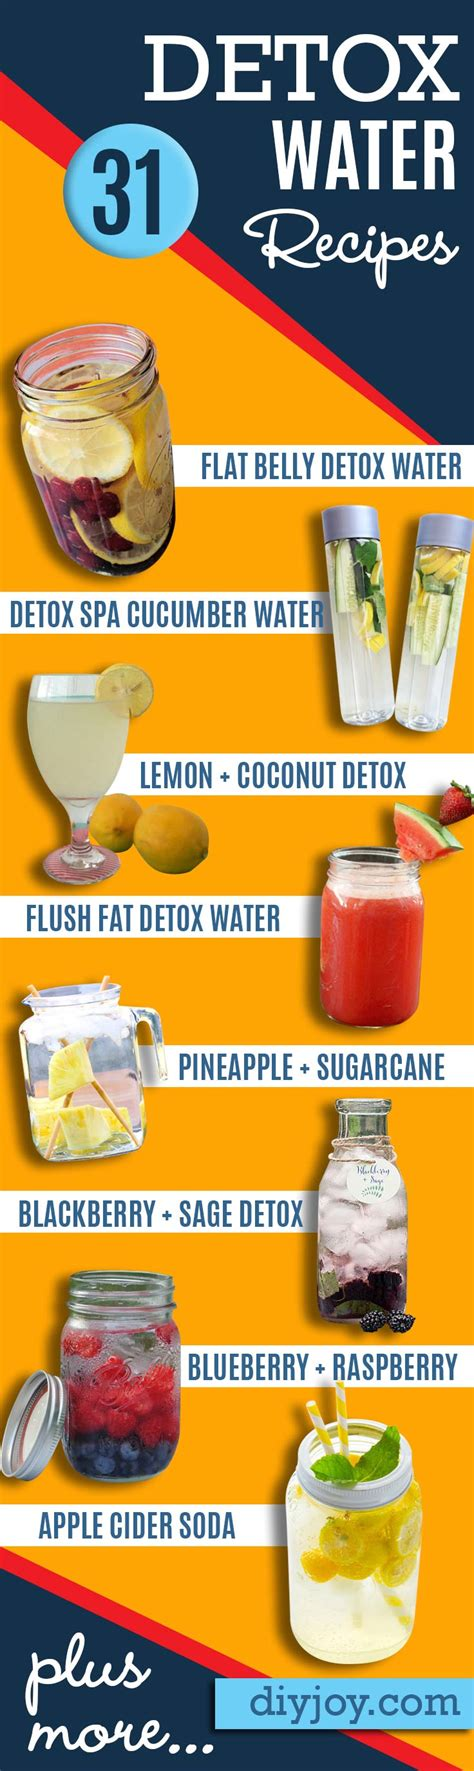 Detox Food Recipes by 31 Diy Detox Water Recipes Drinks To Start 2016 Right